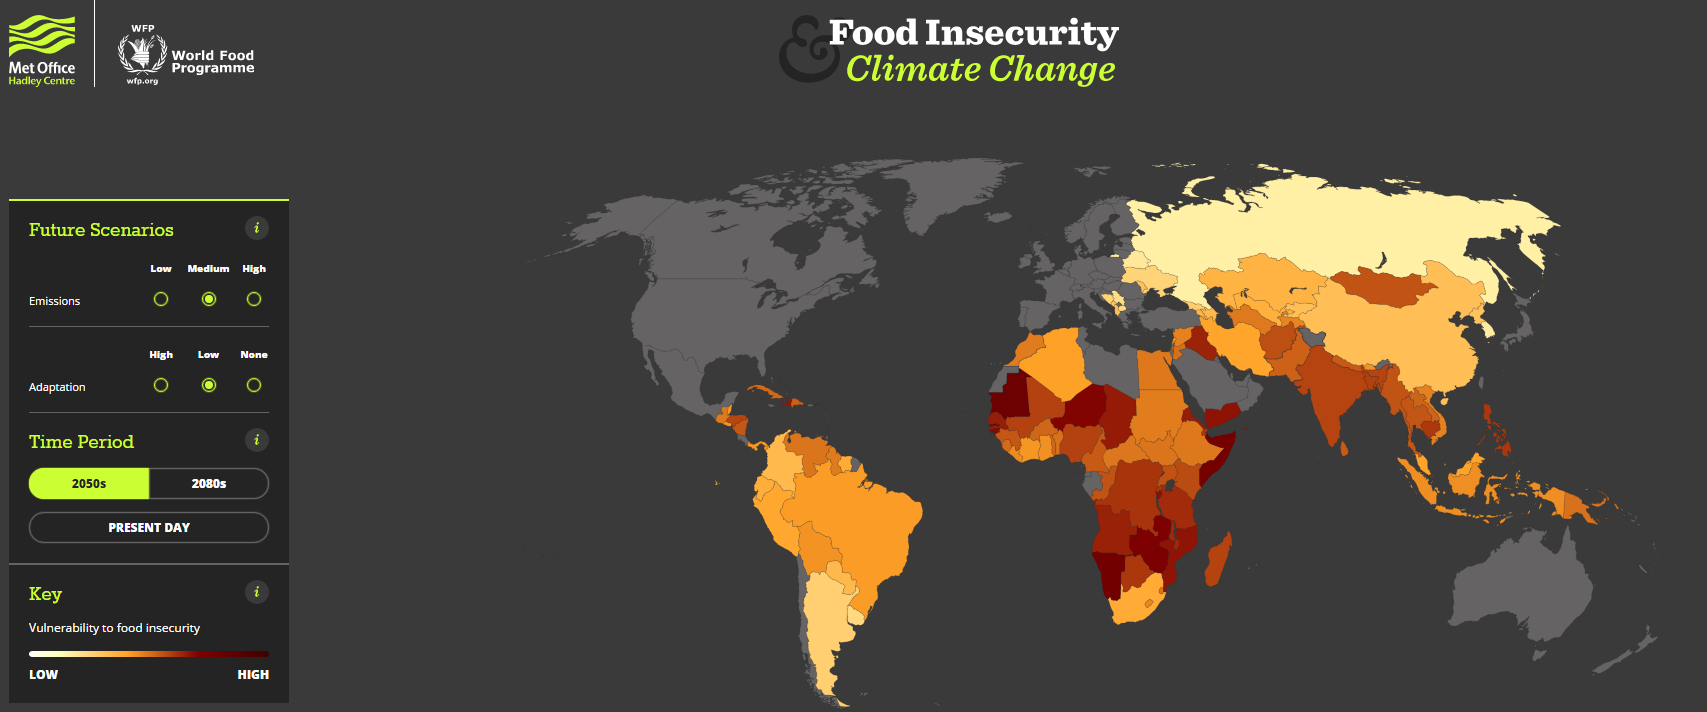 1512B15-food insecurity climate change map